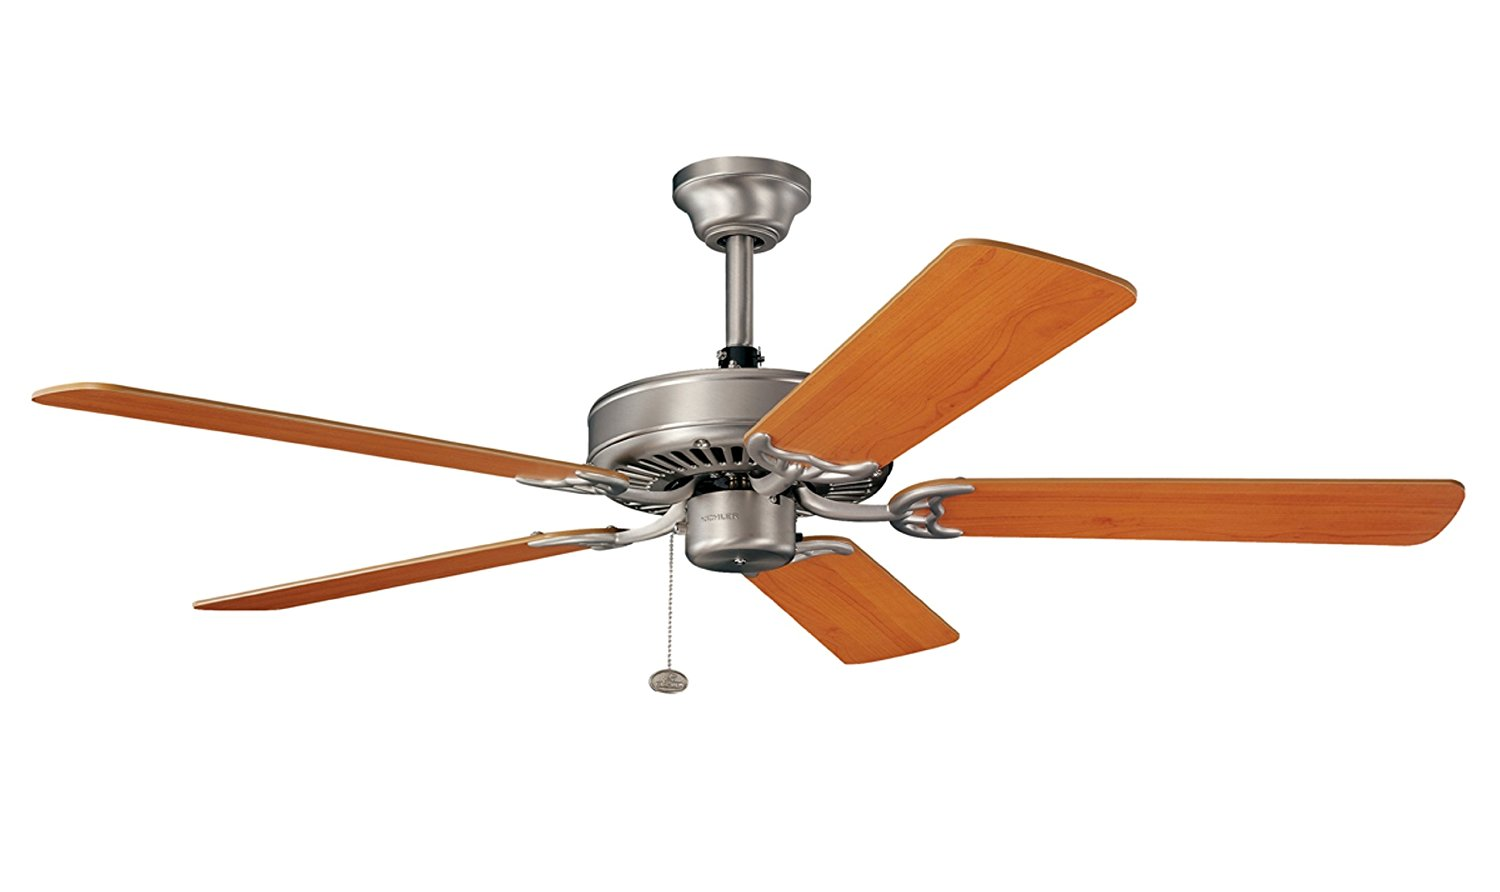 Ceiling Fans With Good Lighting Kichler Ceiling Fans Reviews Best One Homeindec